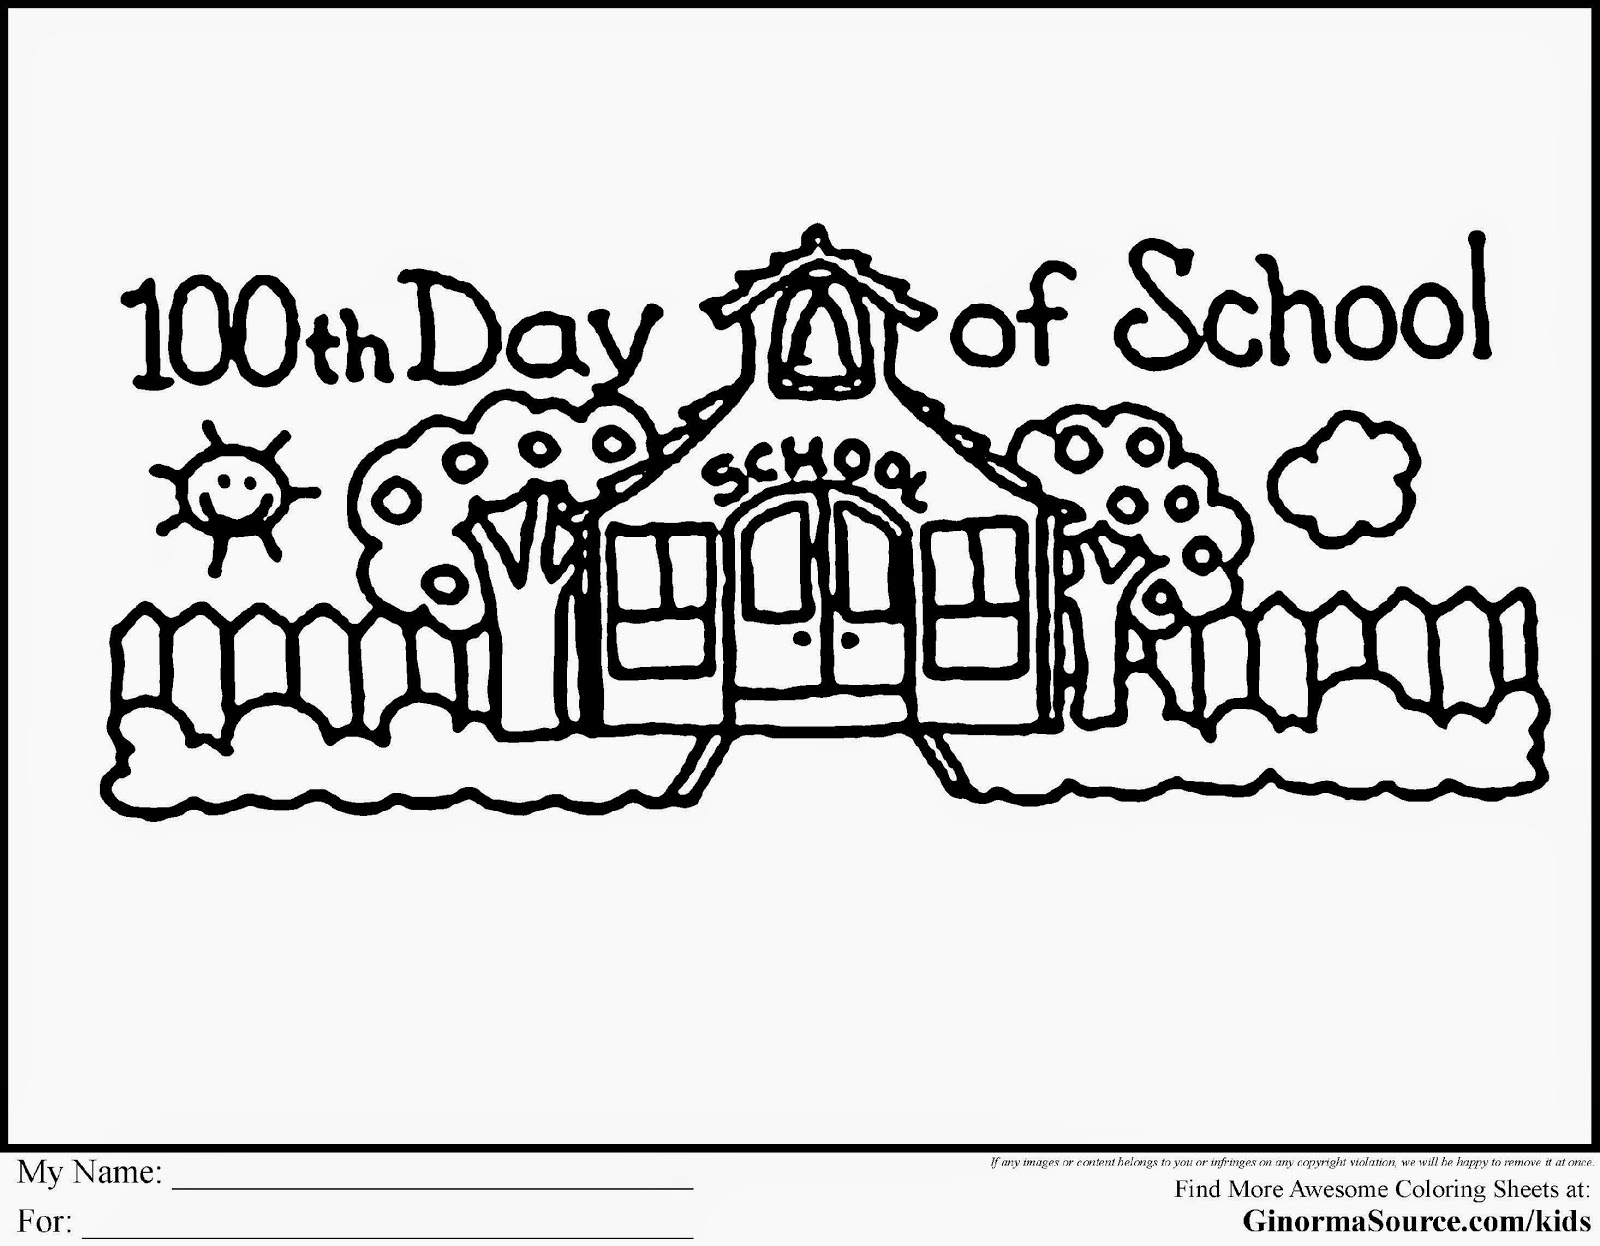 100 day clip art image black and white download 100th day clipart black and white - ClipartFox image black and white download